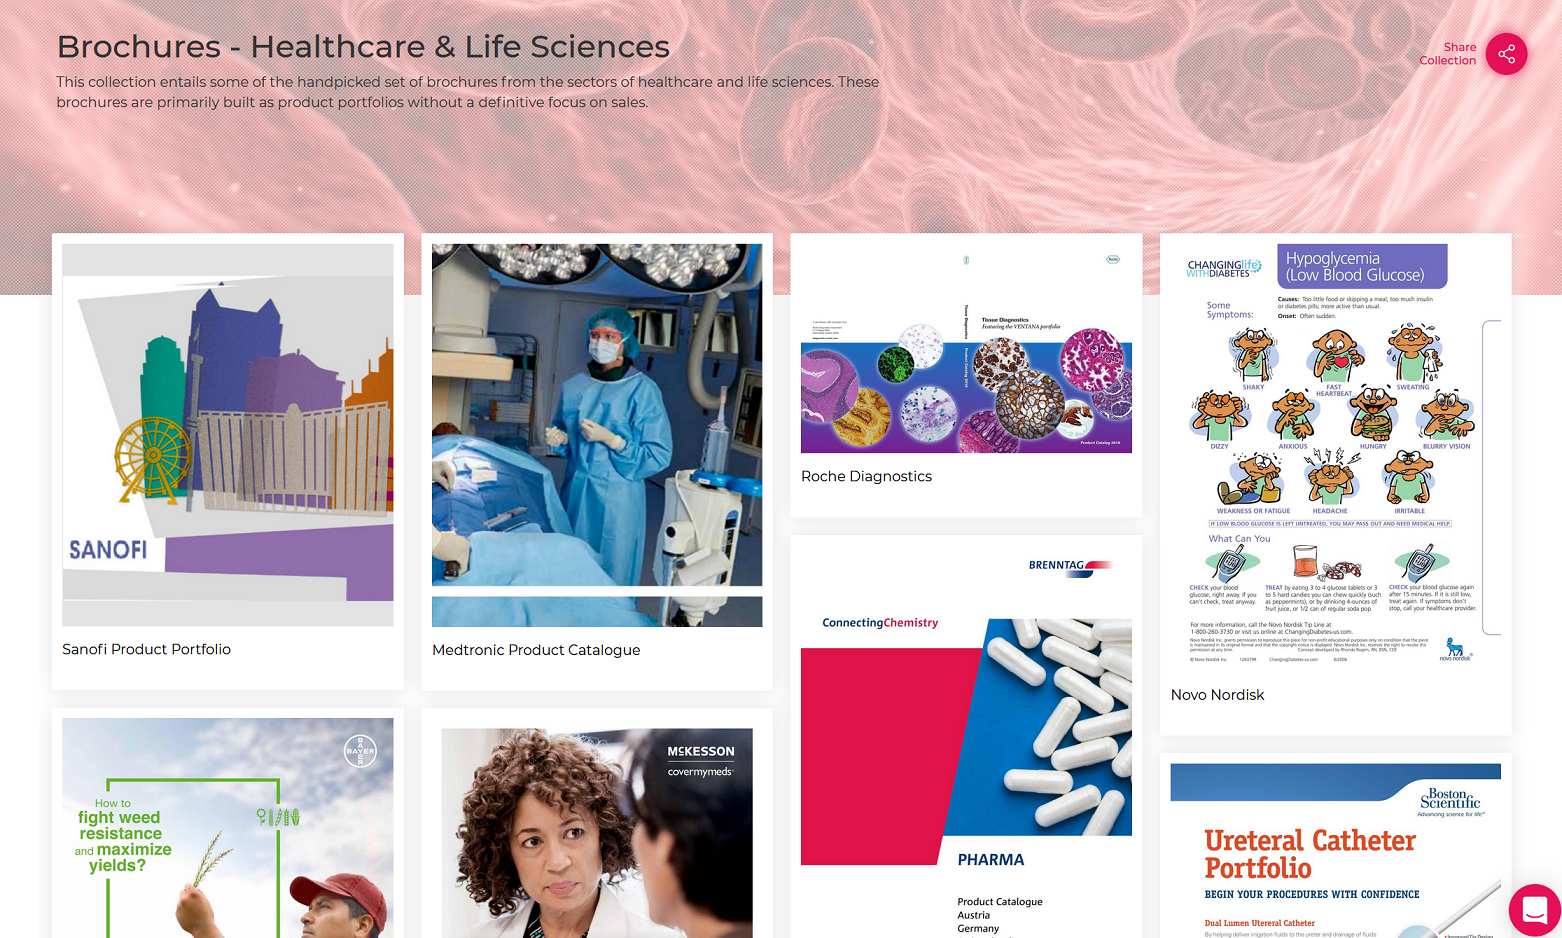 Brochures-Healthcare & Life Sciences Sector